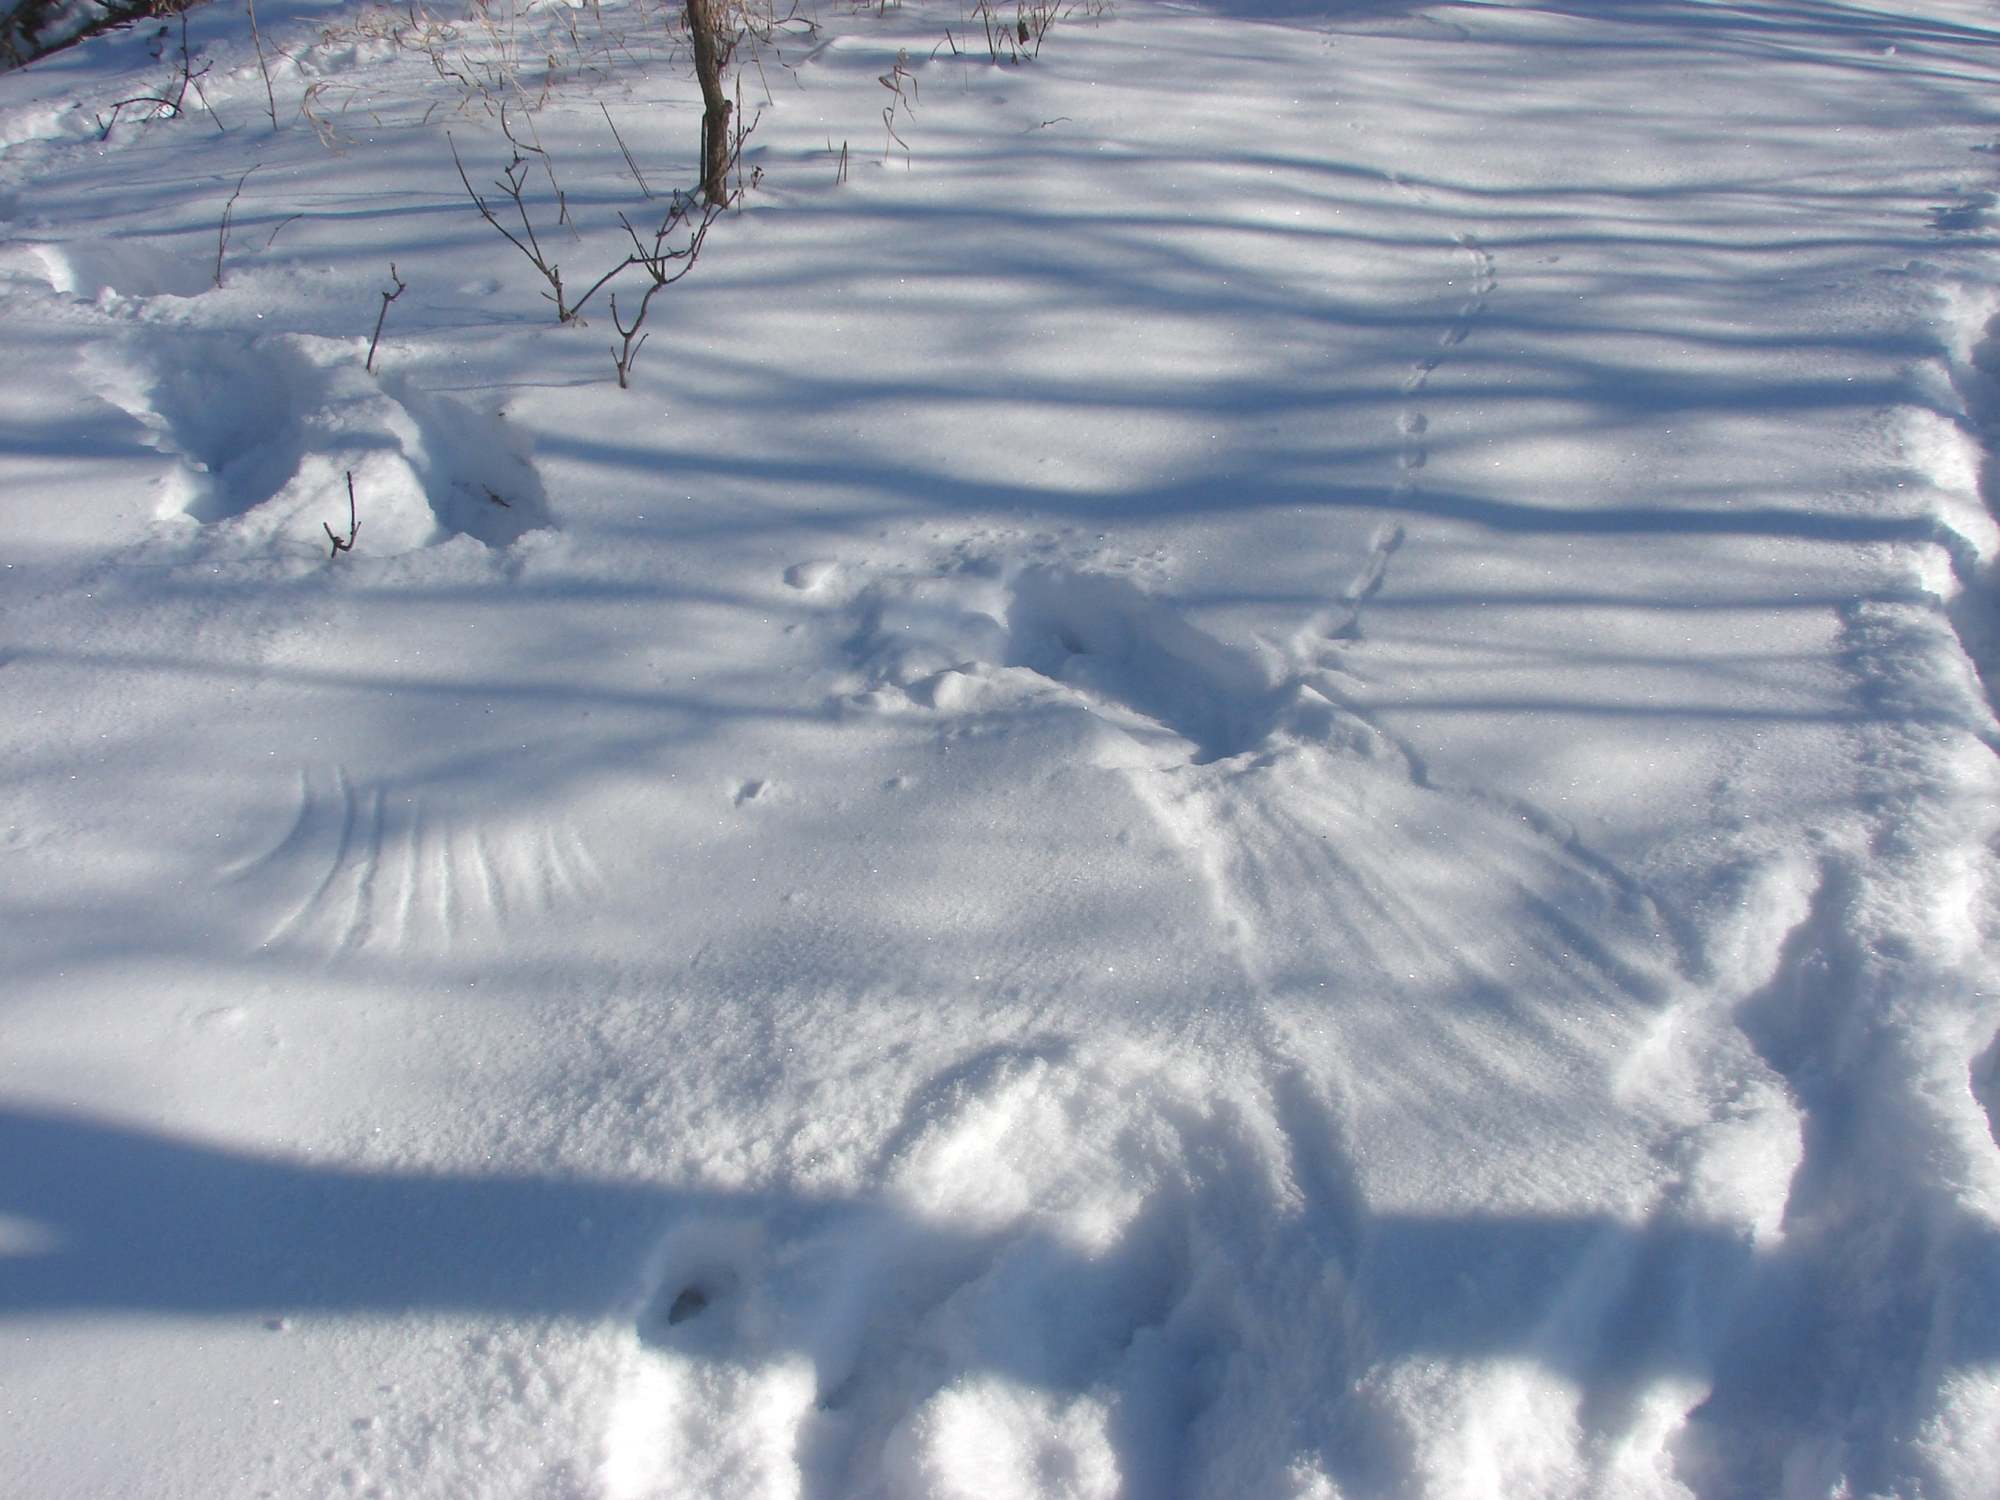 Imprints from bird feathers are seen in the snow where animal tracks end. Photo credit: C.A. Bump.